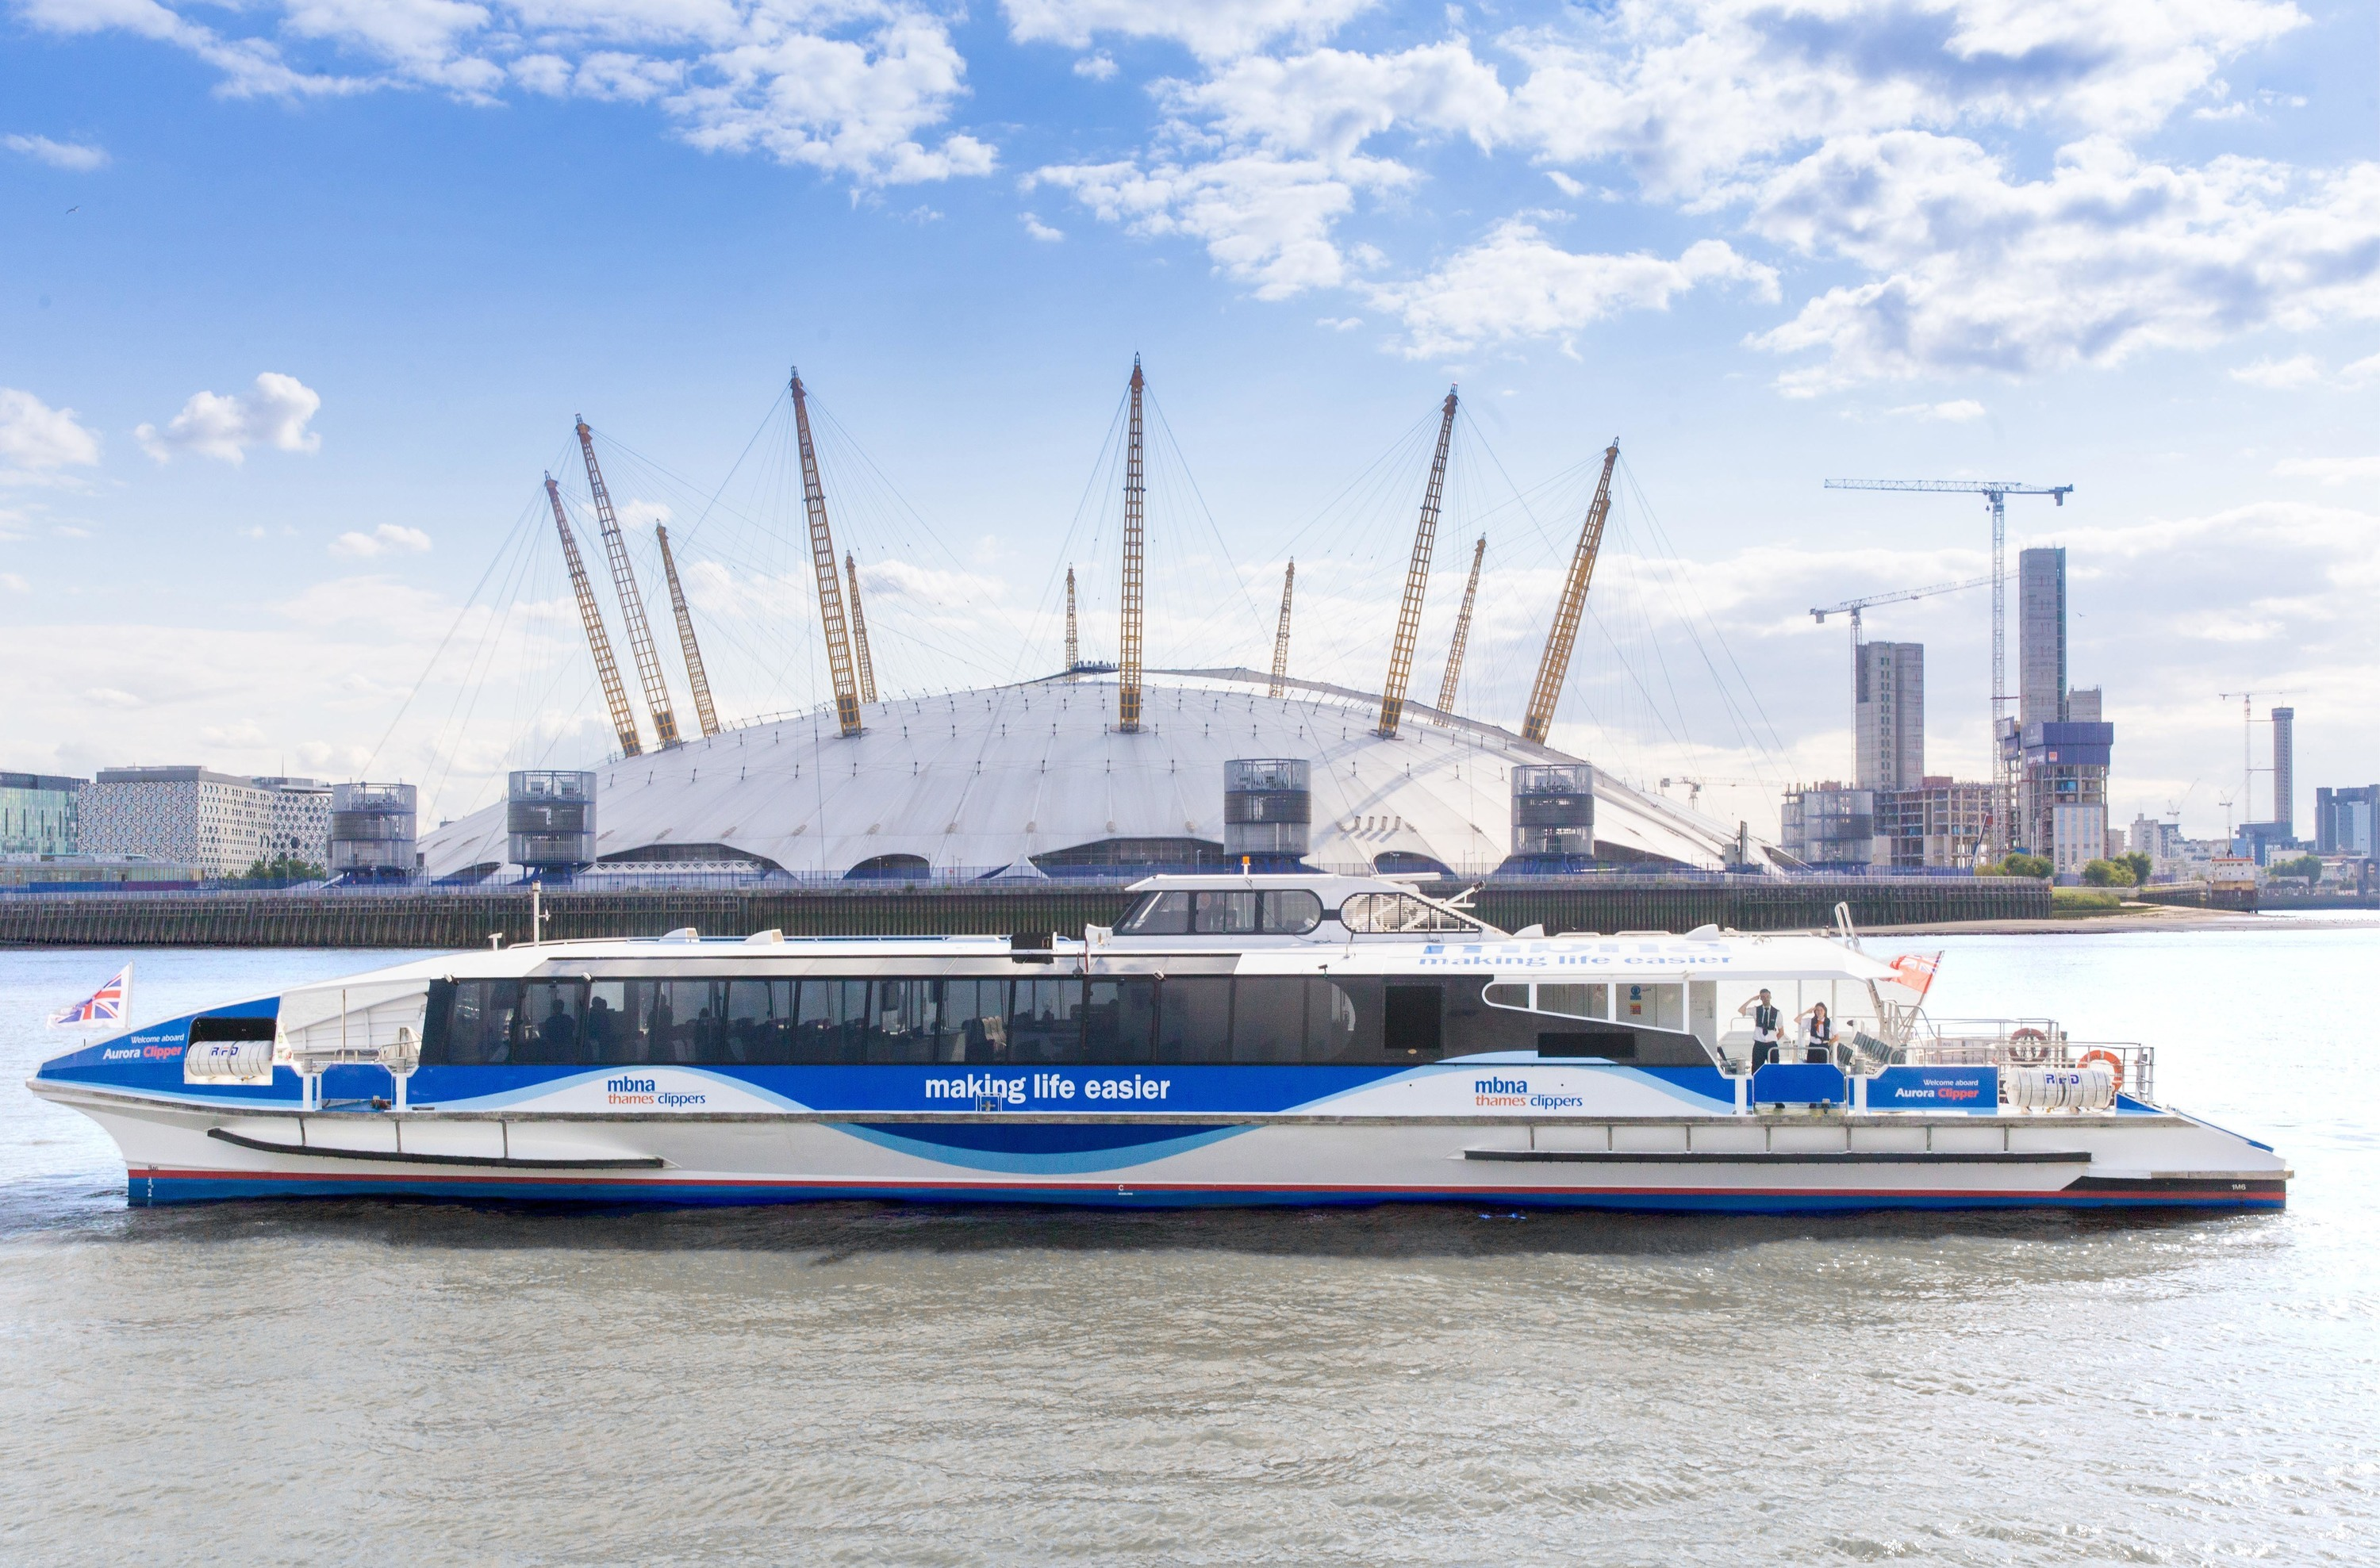 Uber has teamed up with Thames Clippers for a London commuter riverboat service